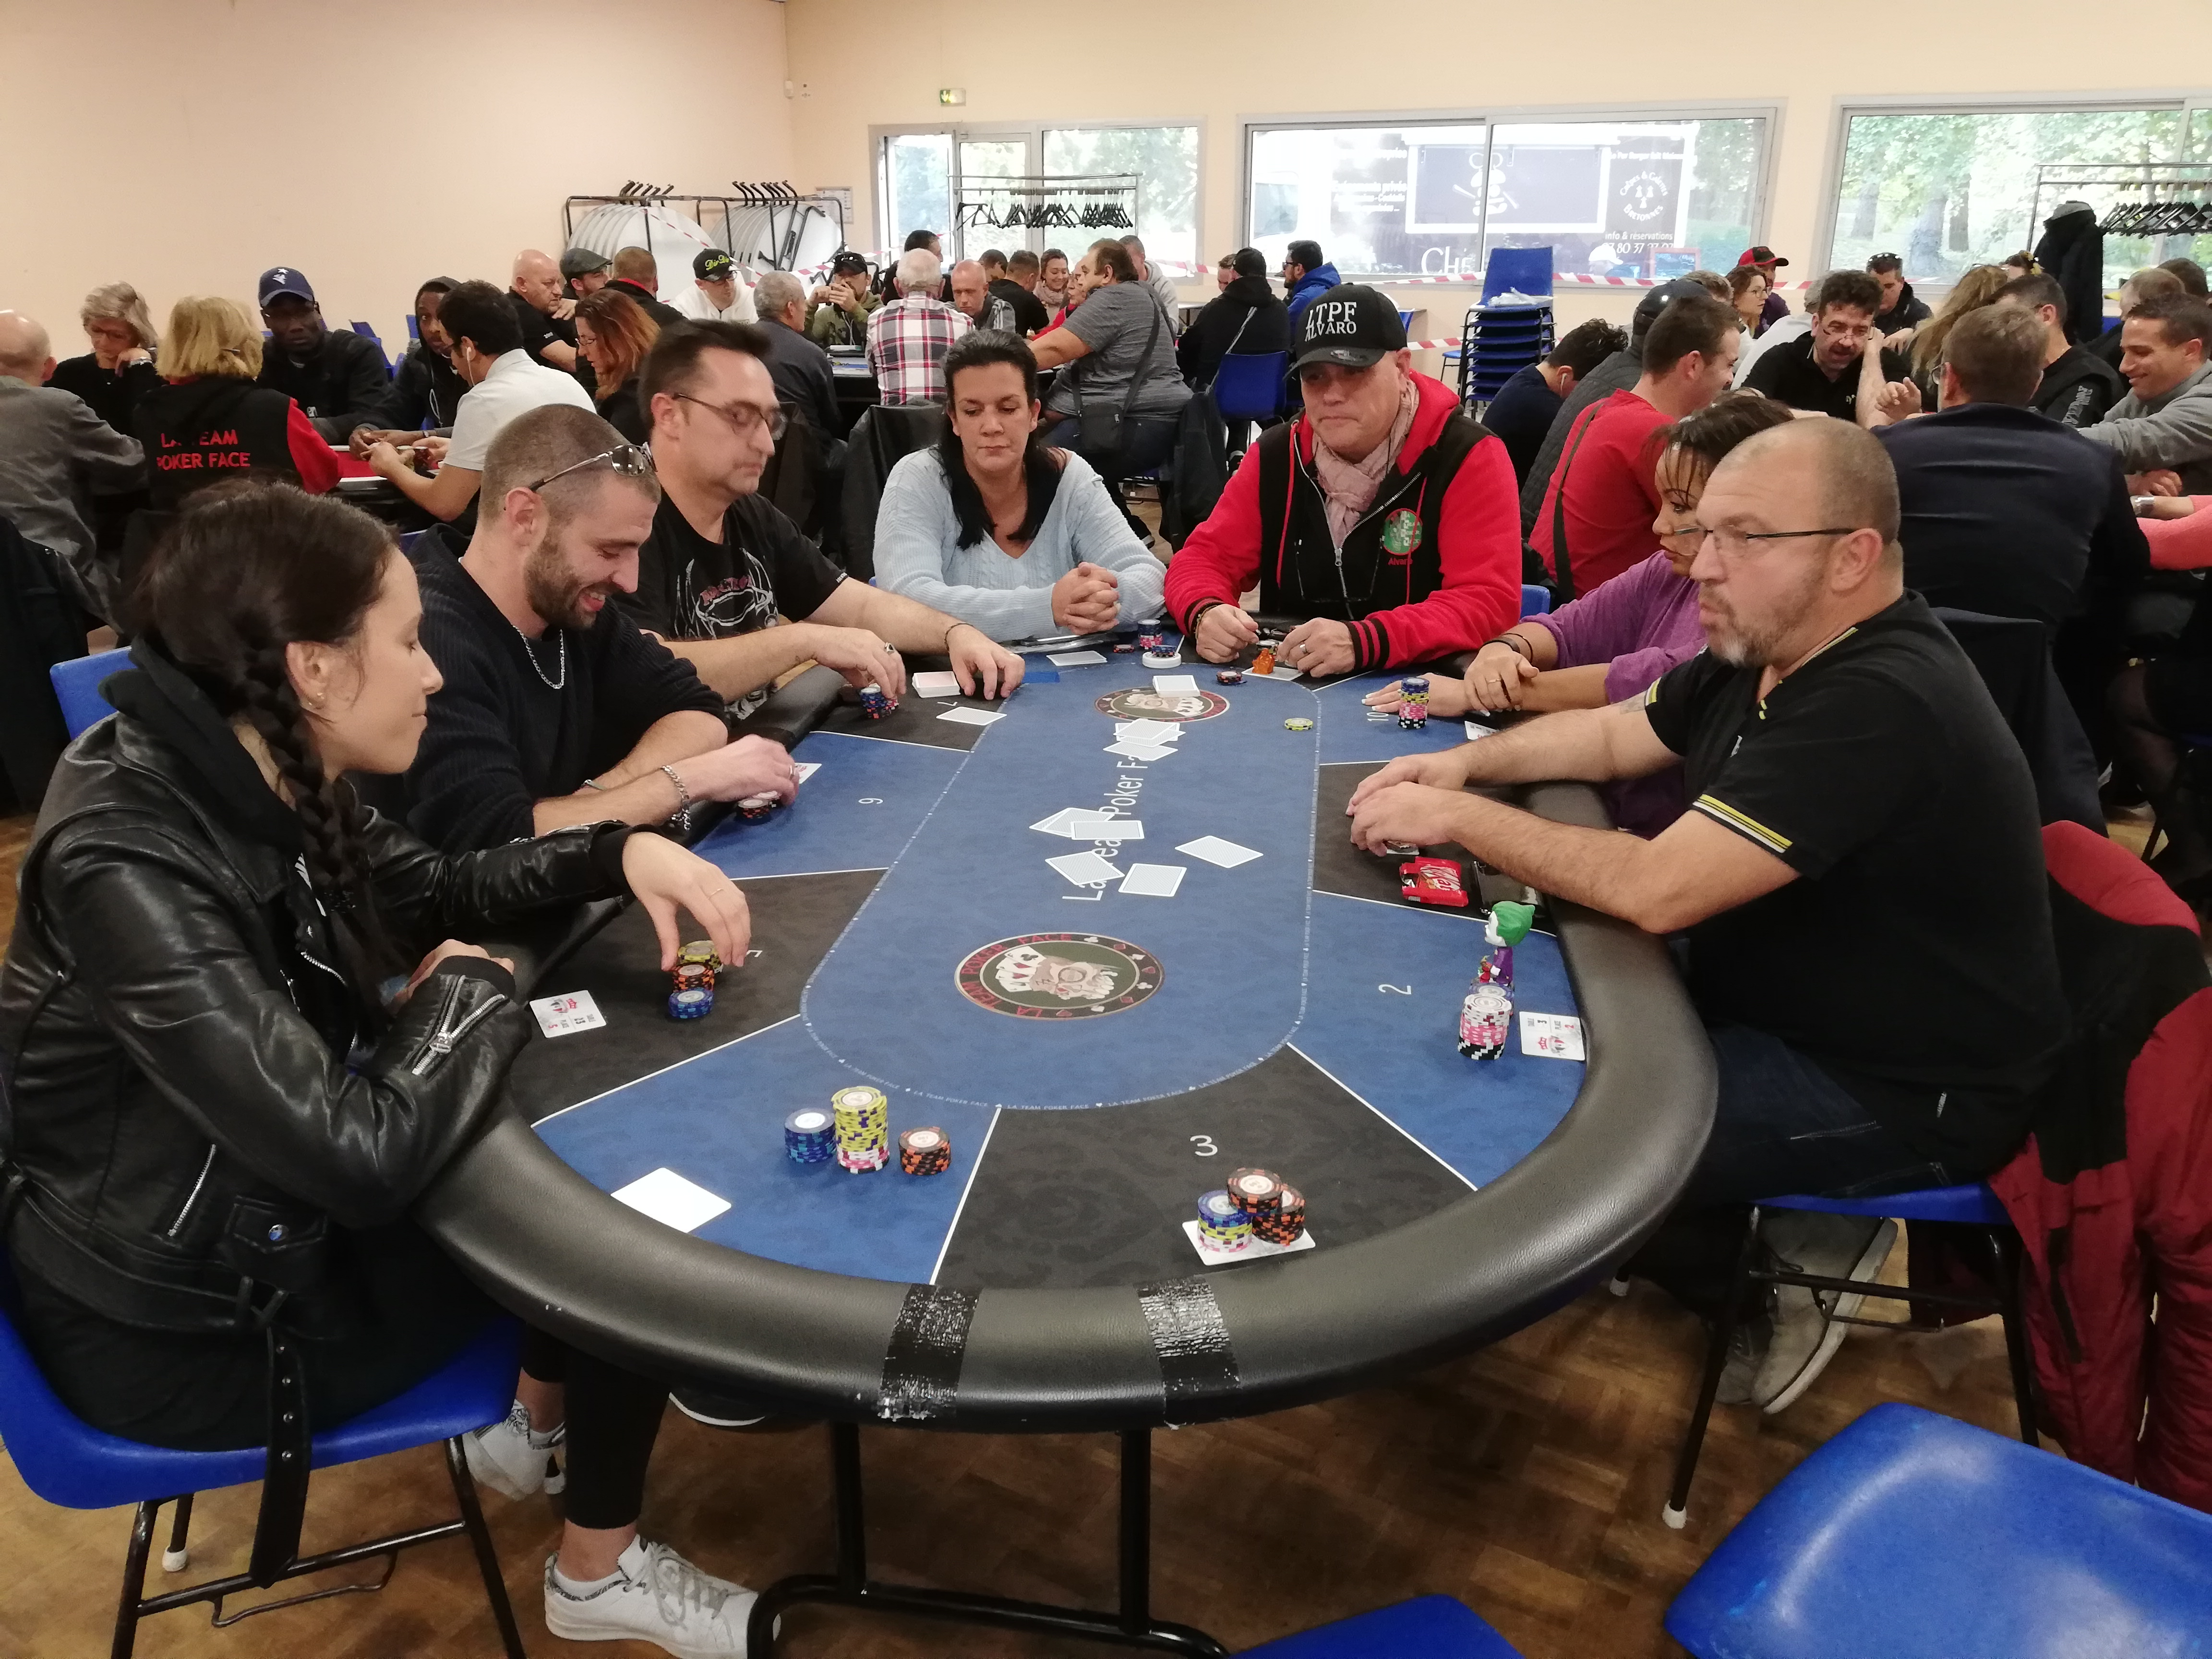 Tournoi Poker Suisse